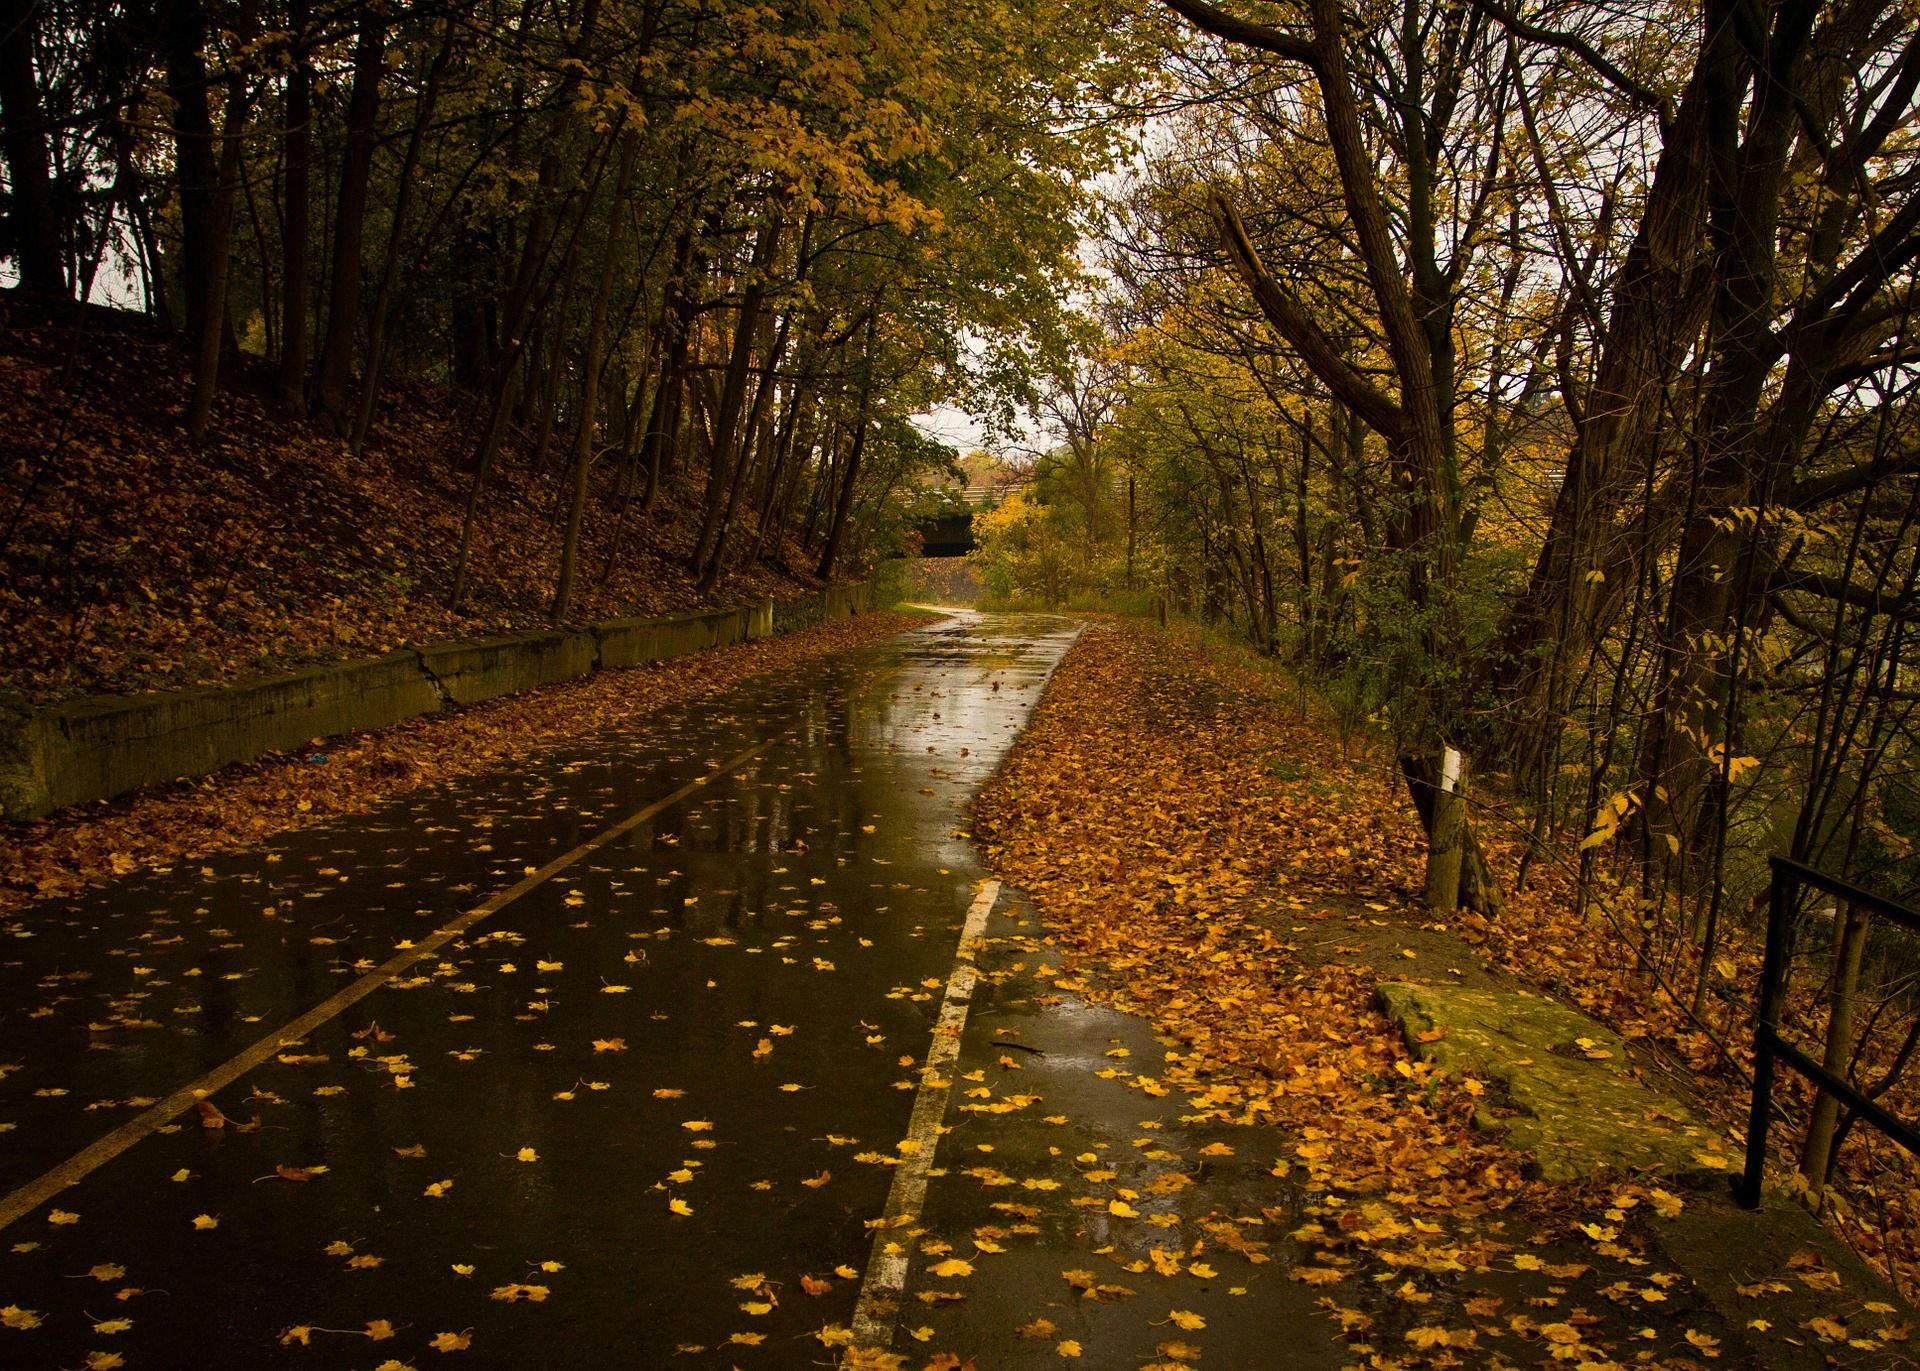 Iphone 6s Wallpaper Fall Wet Road Rainy Day Leaves Fall Autumn Hd Wallpaper